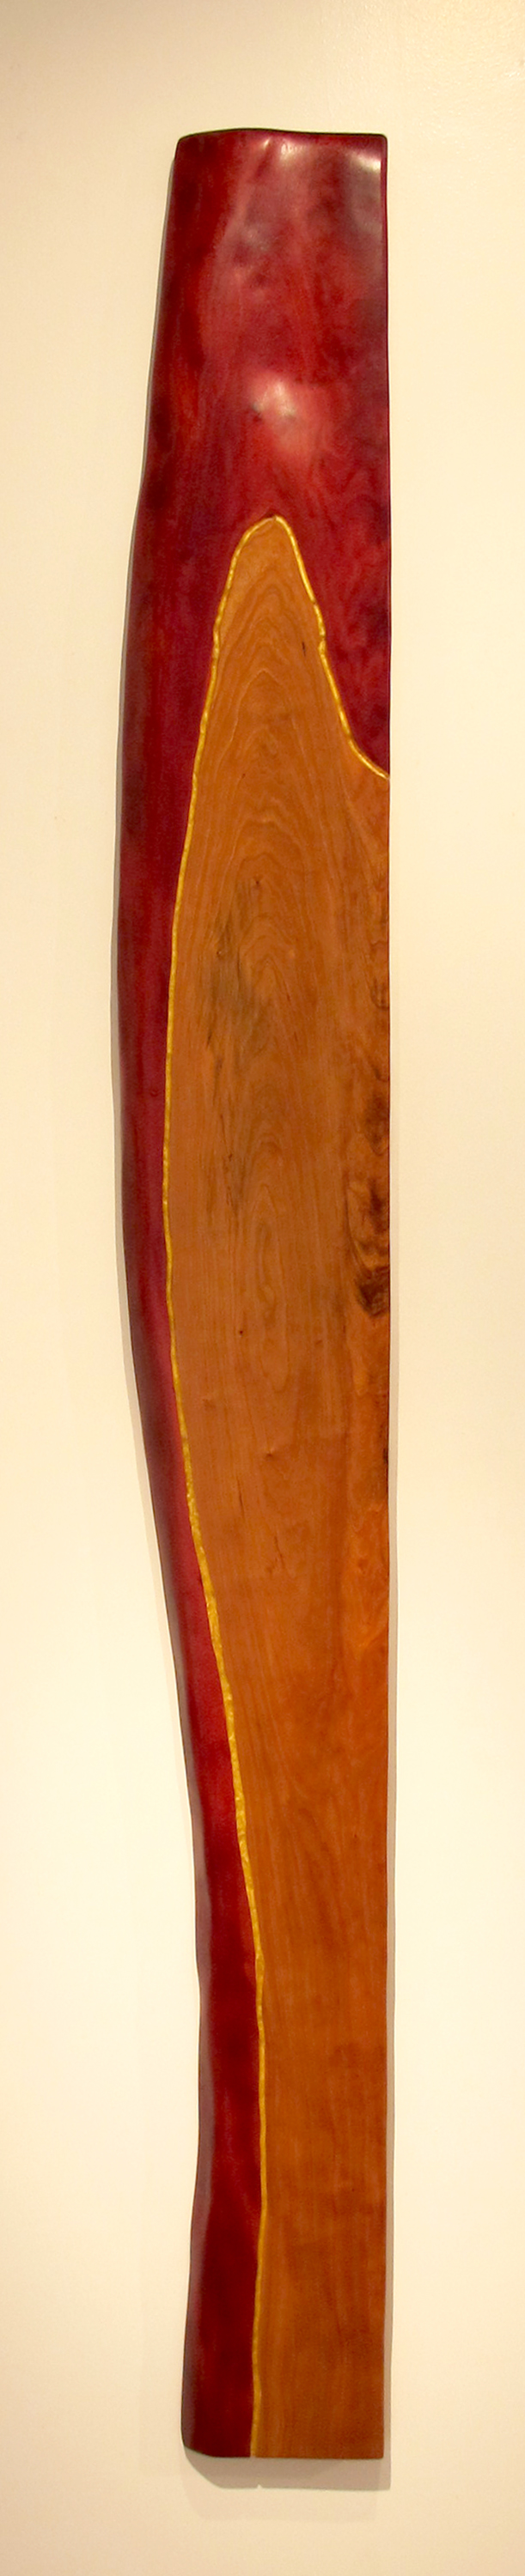 "A View  Jeffrey Brosk JB148 Cherry Wood, Red Stain, Gold Leaf 75"" x 9"" x 1.5"""